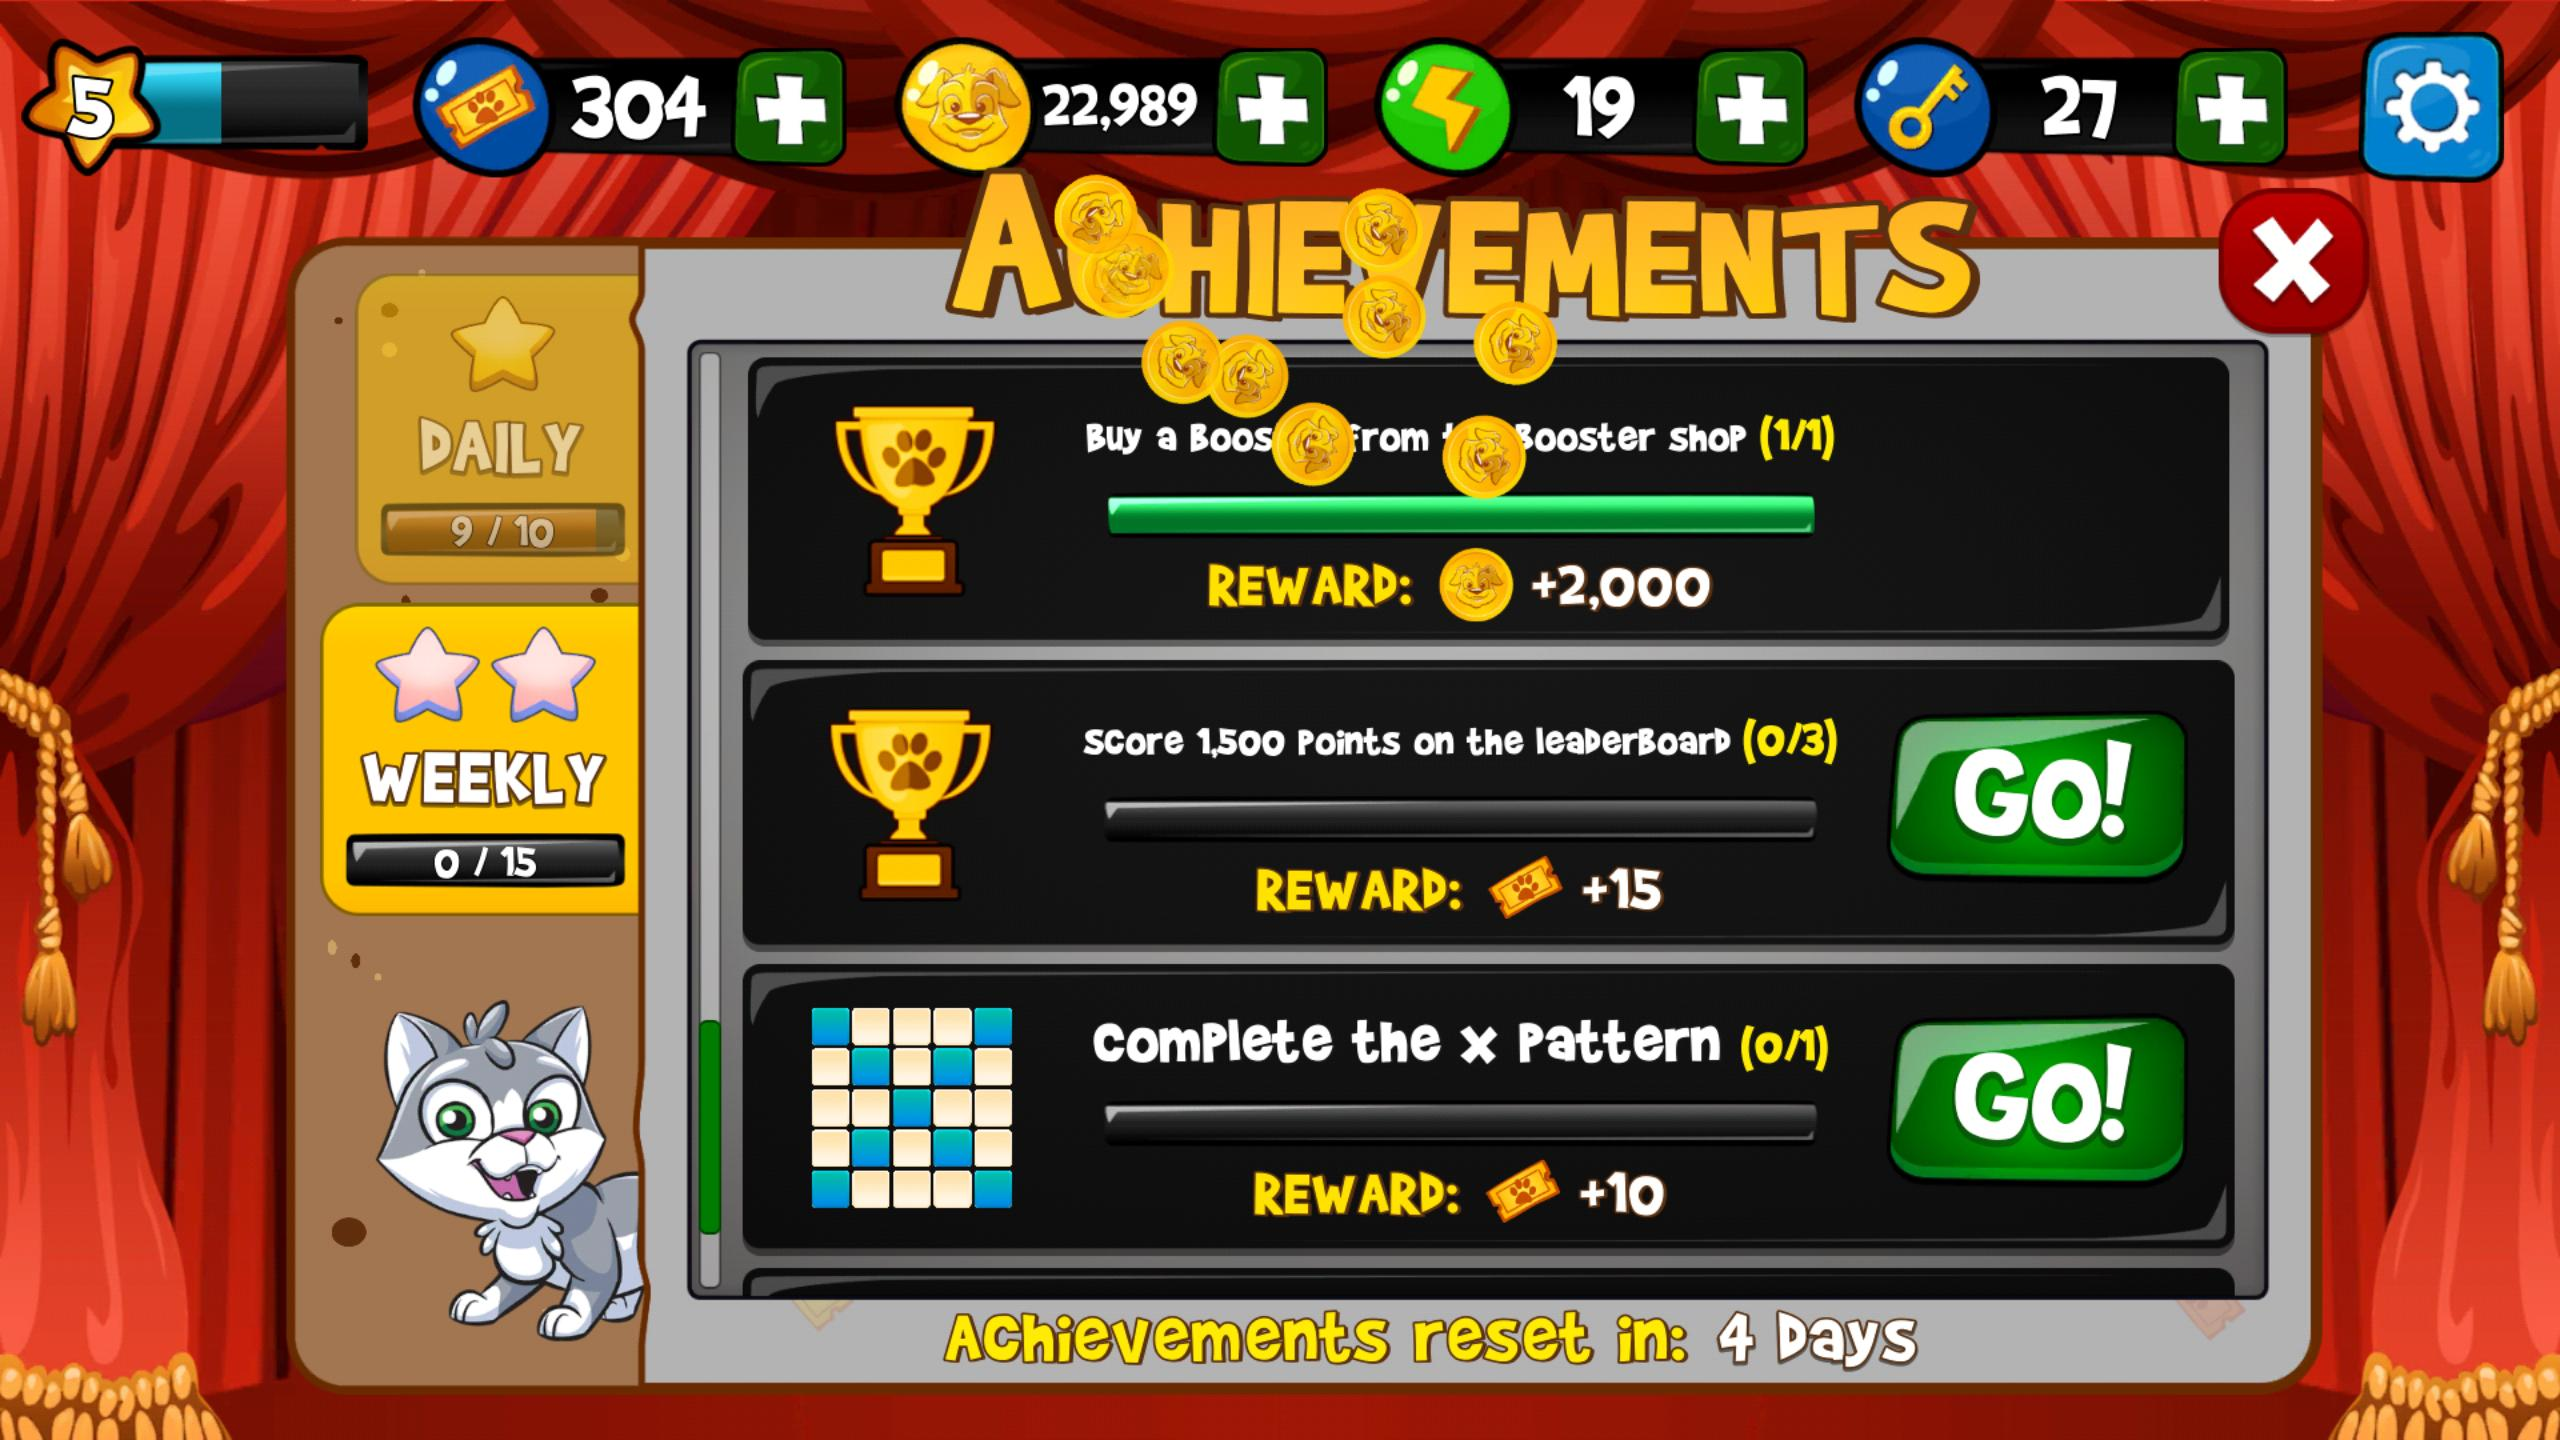 Bingo Abradoodle - Bingo Games Free to Play! 3.0.02 Screenshot 5